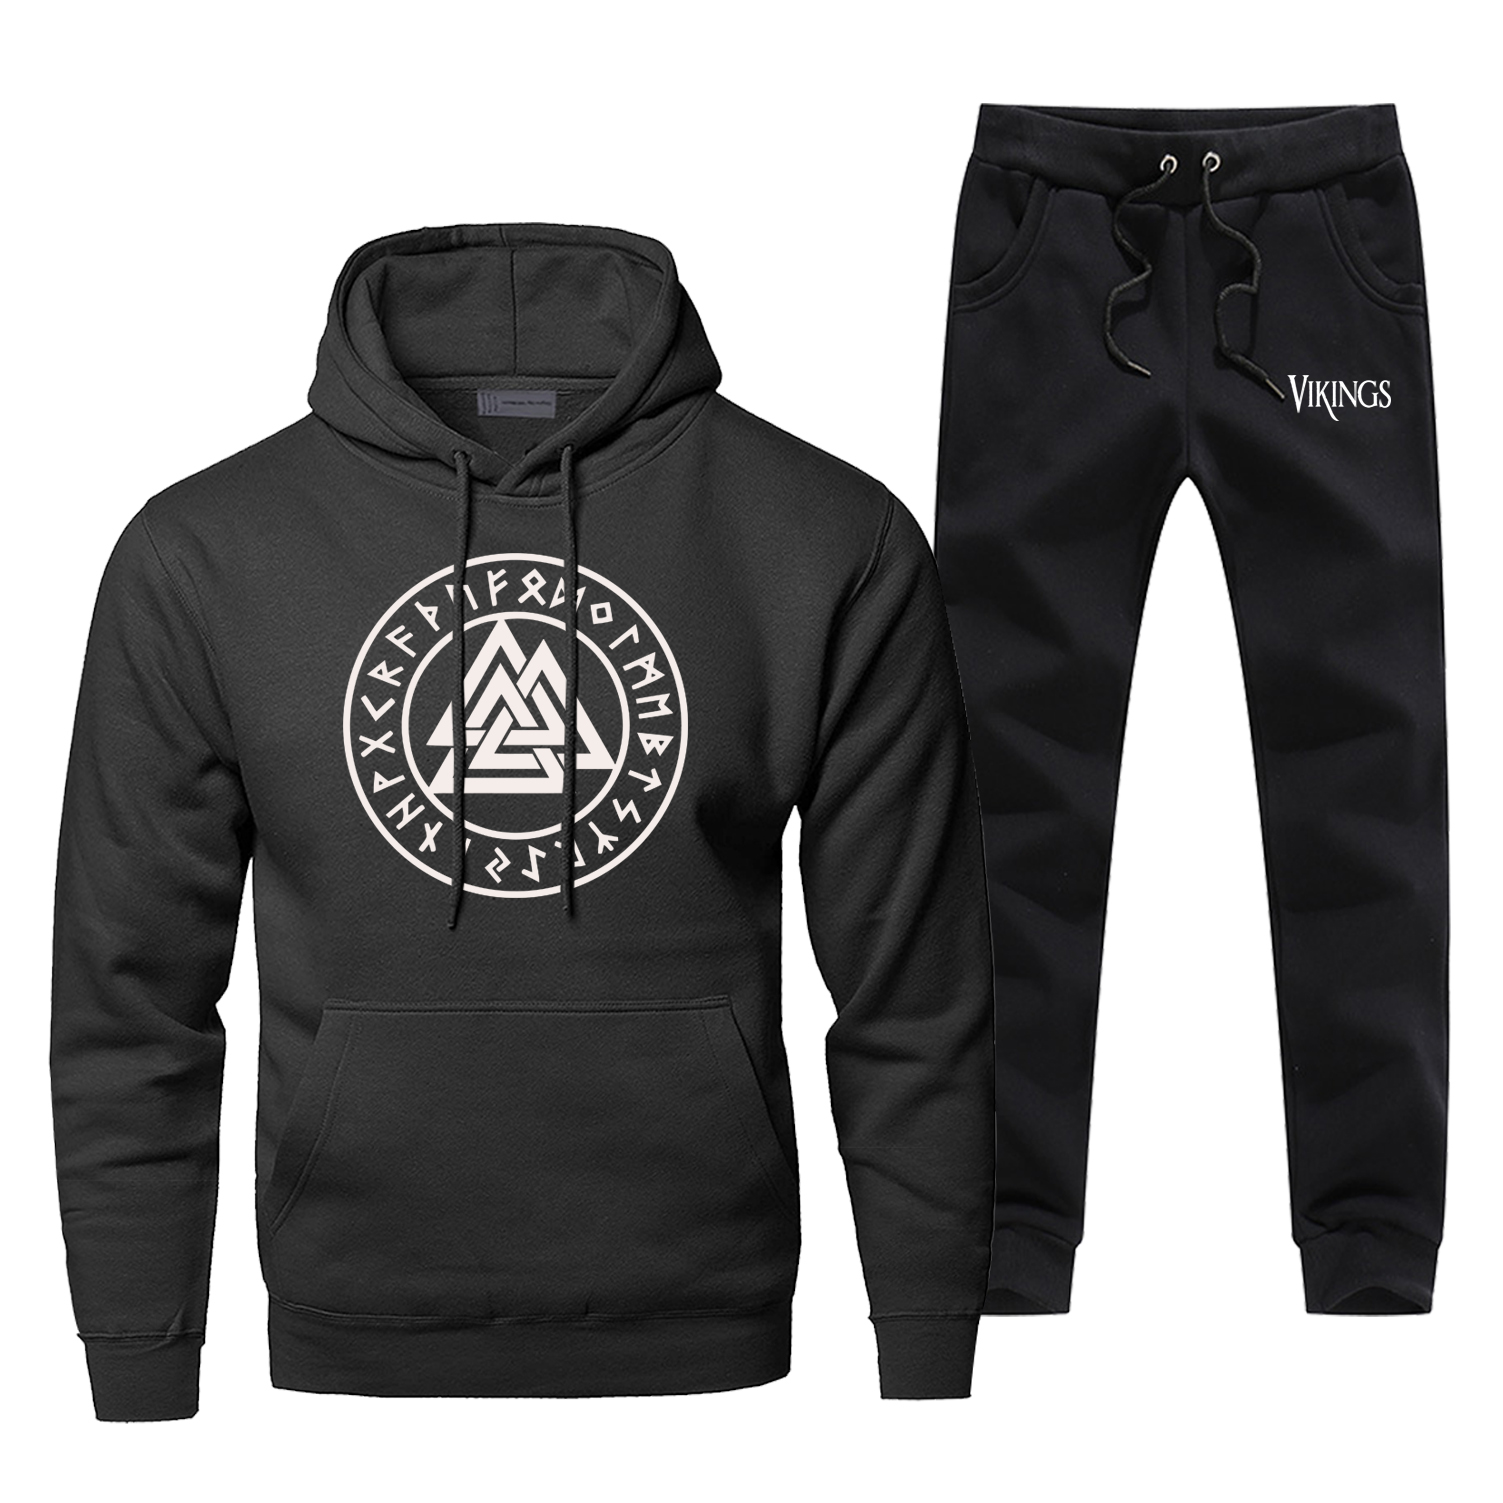 Vikings Symbols Mens Hoodies Sets Two Piece Pant Odin Viking Hoodie Sweatshirt Sweatpants Streetwear Sons   Sweatshirts